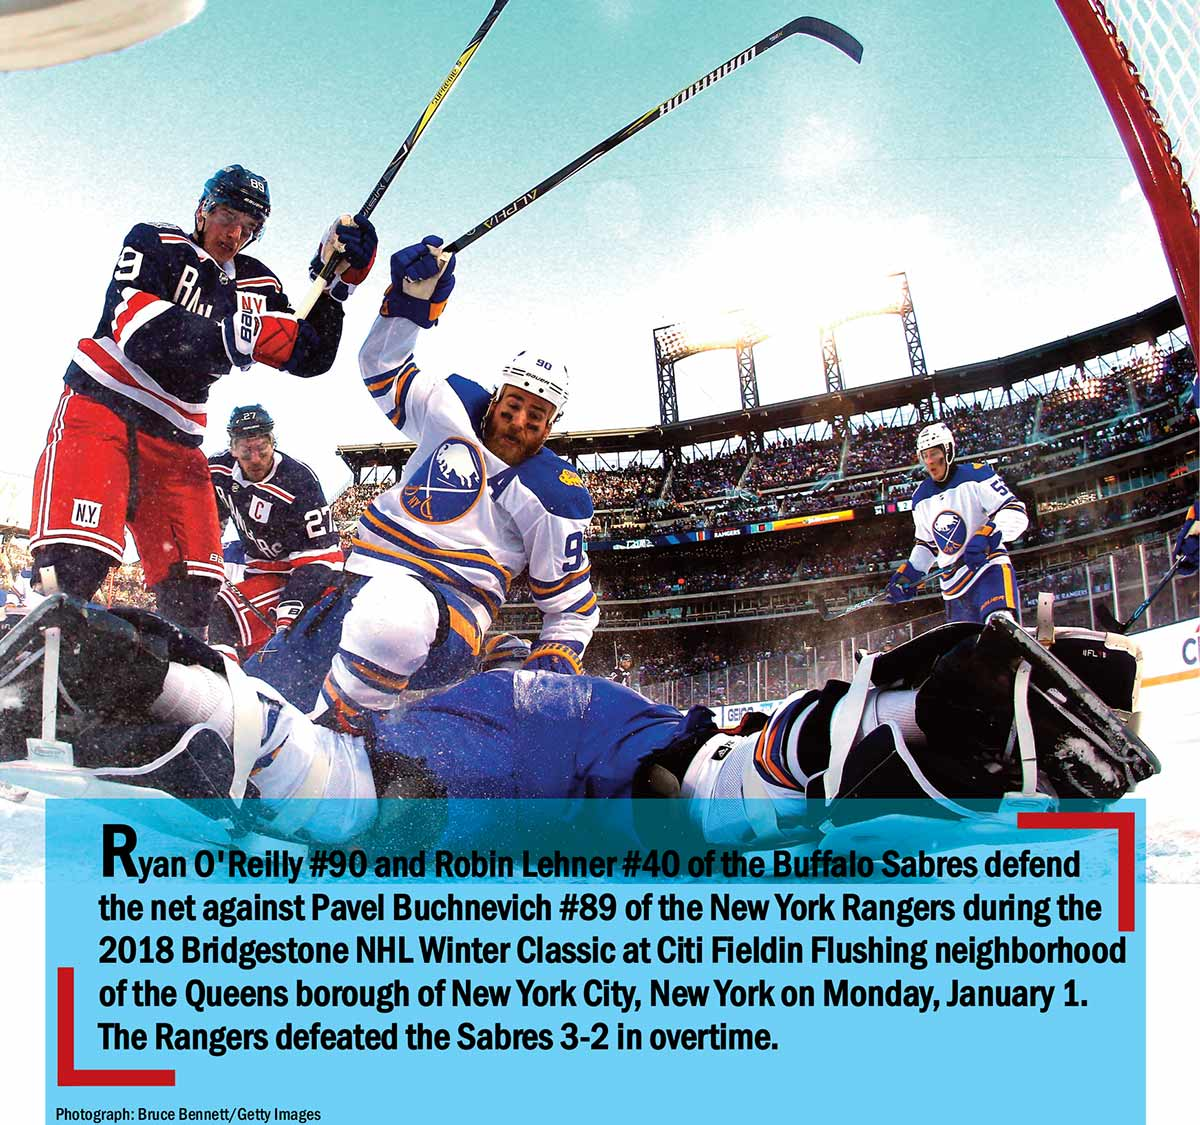 Ryan O'Reilly #90 and Robin Lehner #40 of the Buffalo Sabres defend the net against Pavel Buchnevich #89 of the New York Rangers during the 2018 Bridgestone NHL Winter Classic at Citi Fieldin Flushing neighborhood of the Queens borough of New York City, New York on Monday January 1. The Rangers defeated the Sabres 3-2 in overtime.